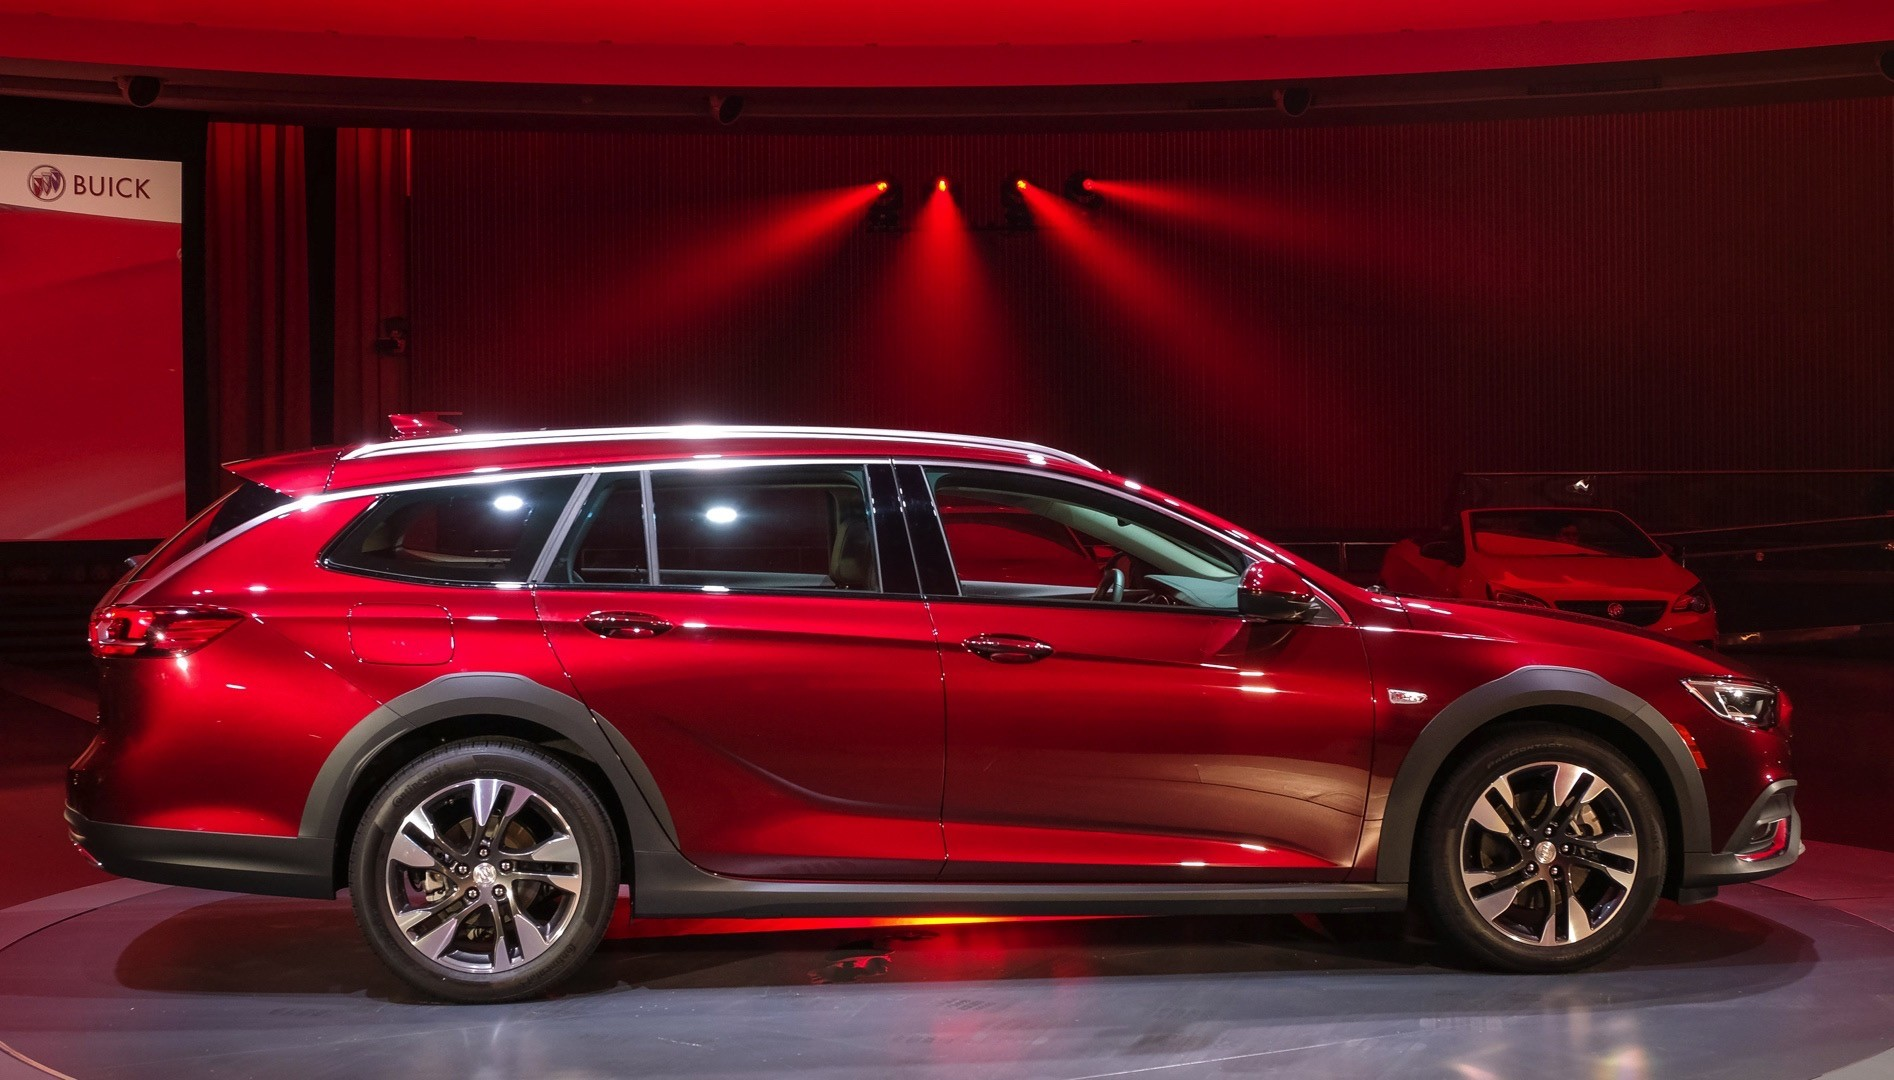 2018 buick regal gs leak suggests v6 power and awd autoevolution. Black Bedroom Furniture Sets. Home Design Ideas